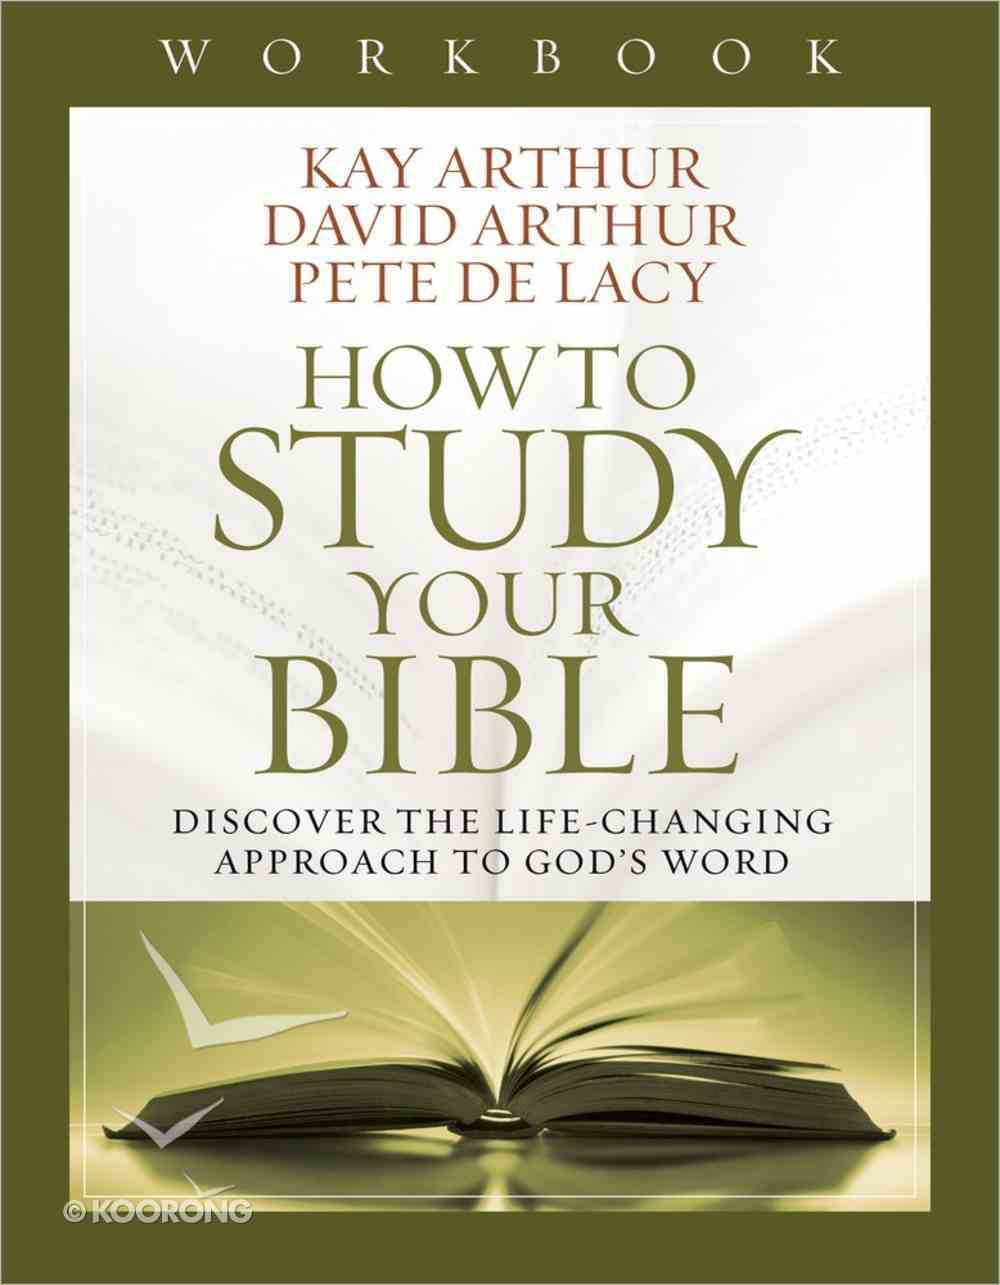 How to Study Your Bible (Workbook) Paperback